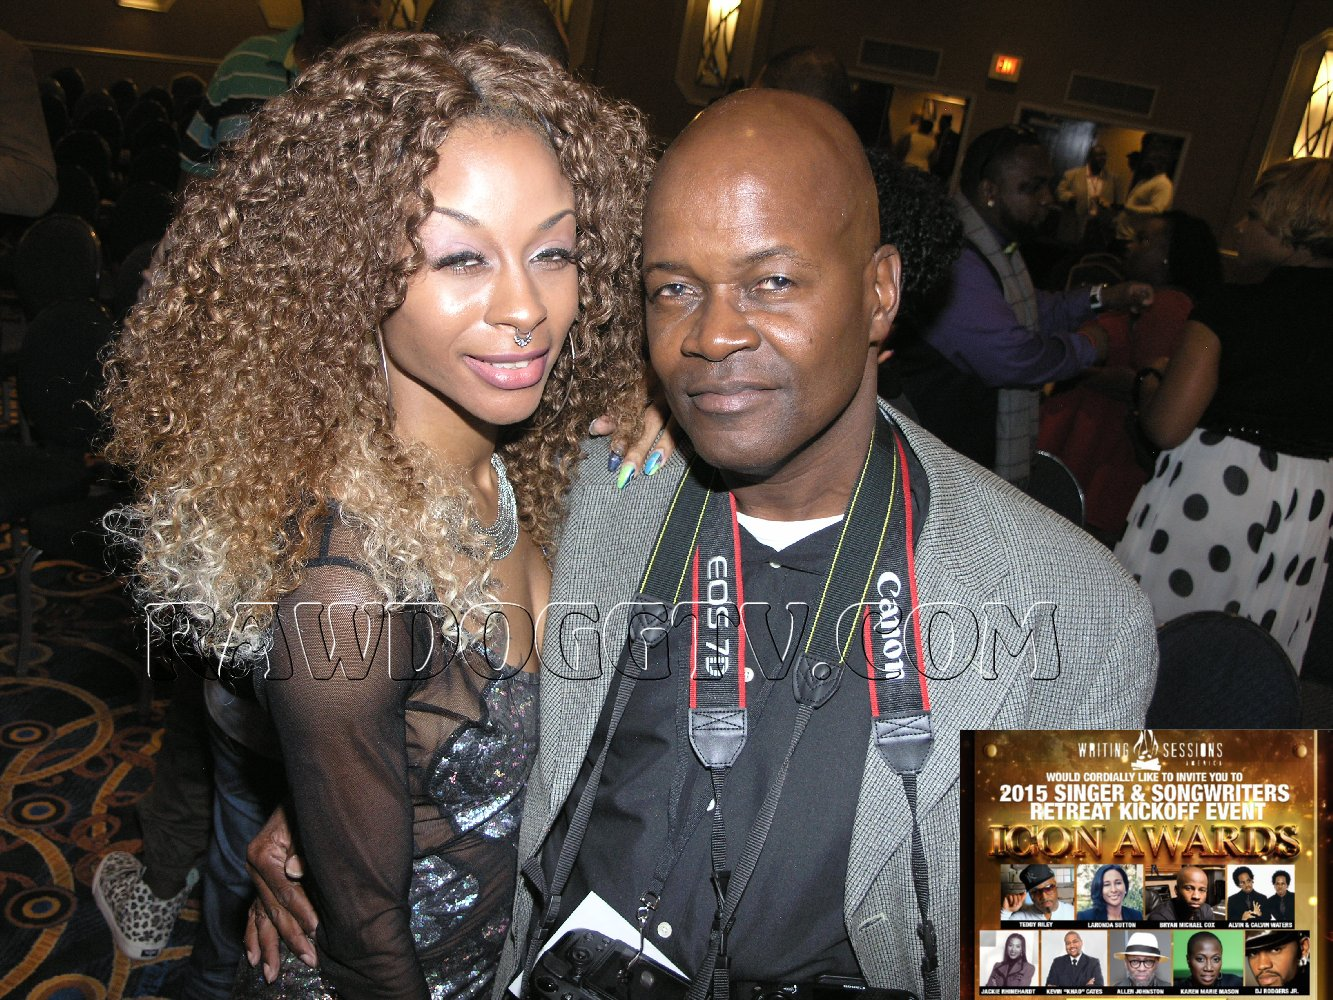 WRITING SESSIONS OF AMERICA RETREAT PHOTOS WSAATL PICS 2015 ICON AWARDS (1)